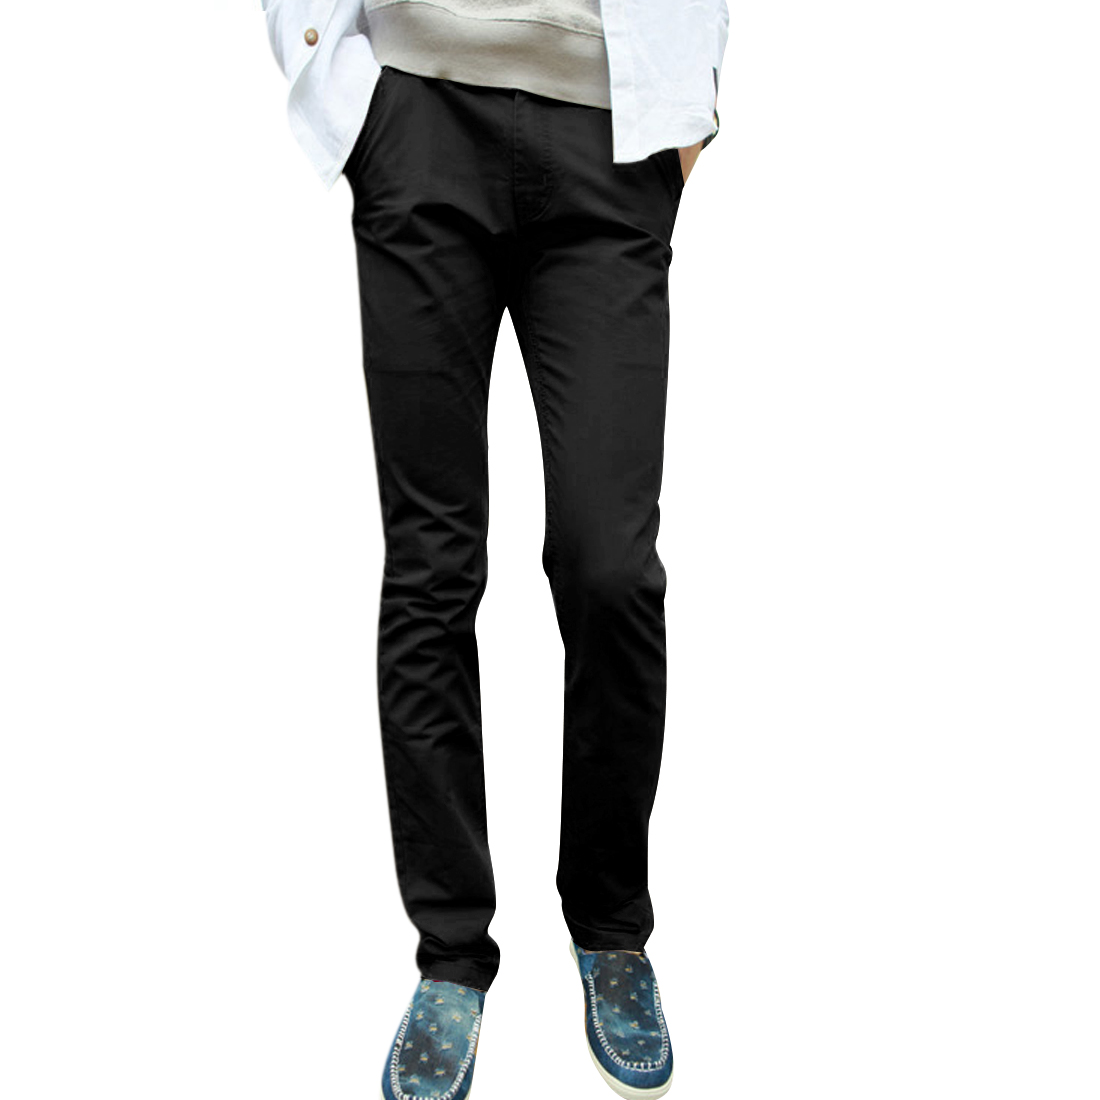 Mens Chic Zipper Fly Front Hip Pockets Design Black Casual Long Pants W33